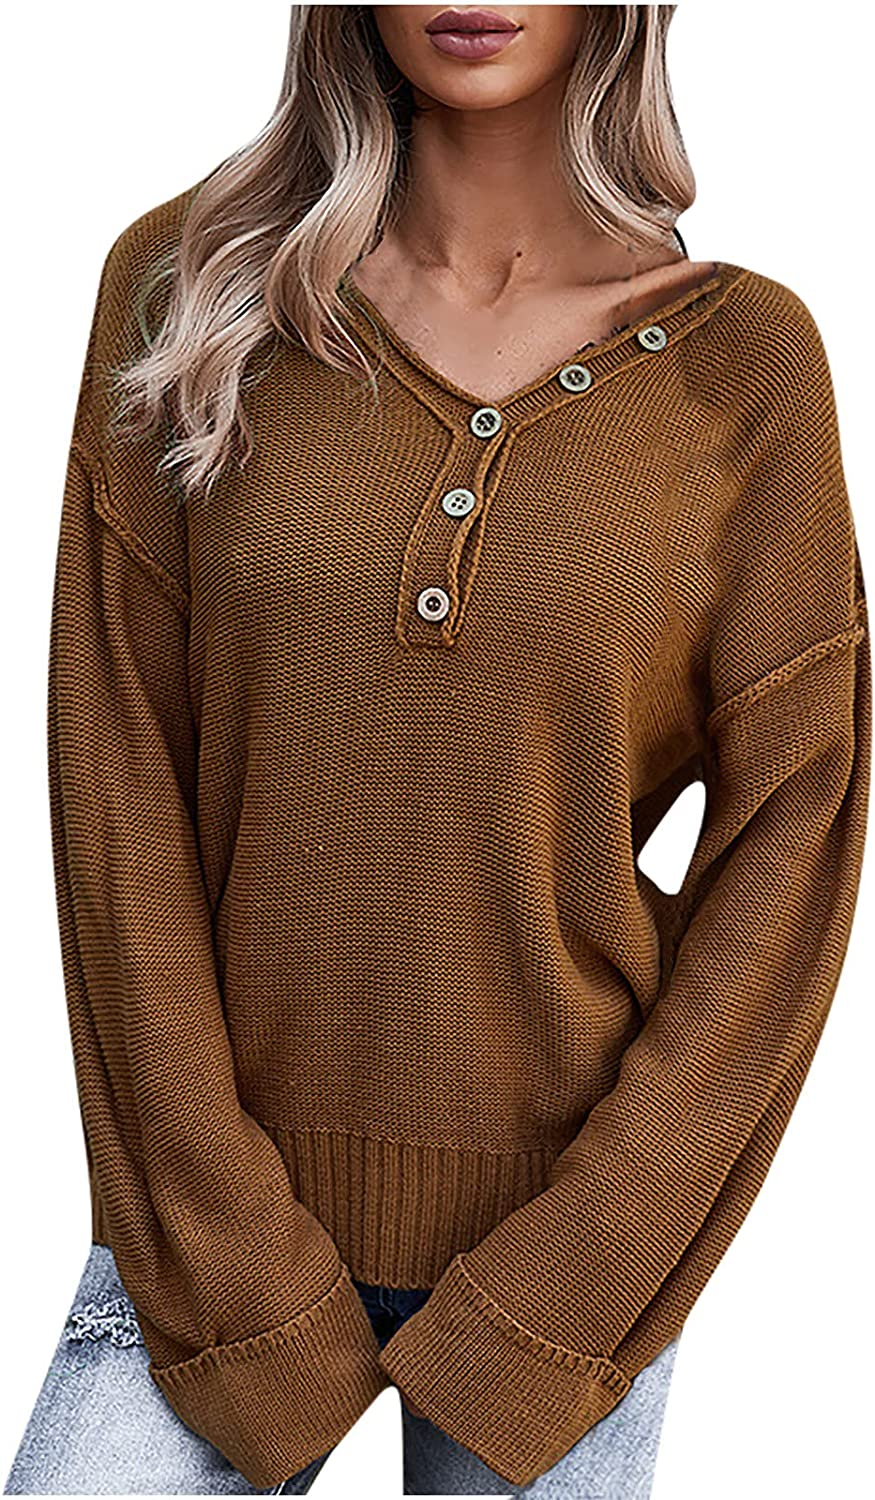 Womens Solid Button Up Long Sleeve Tee Shirt Casual Color Block Pullover Tops Fashion Sweatshirt Tunic Shirts